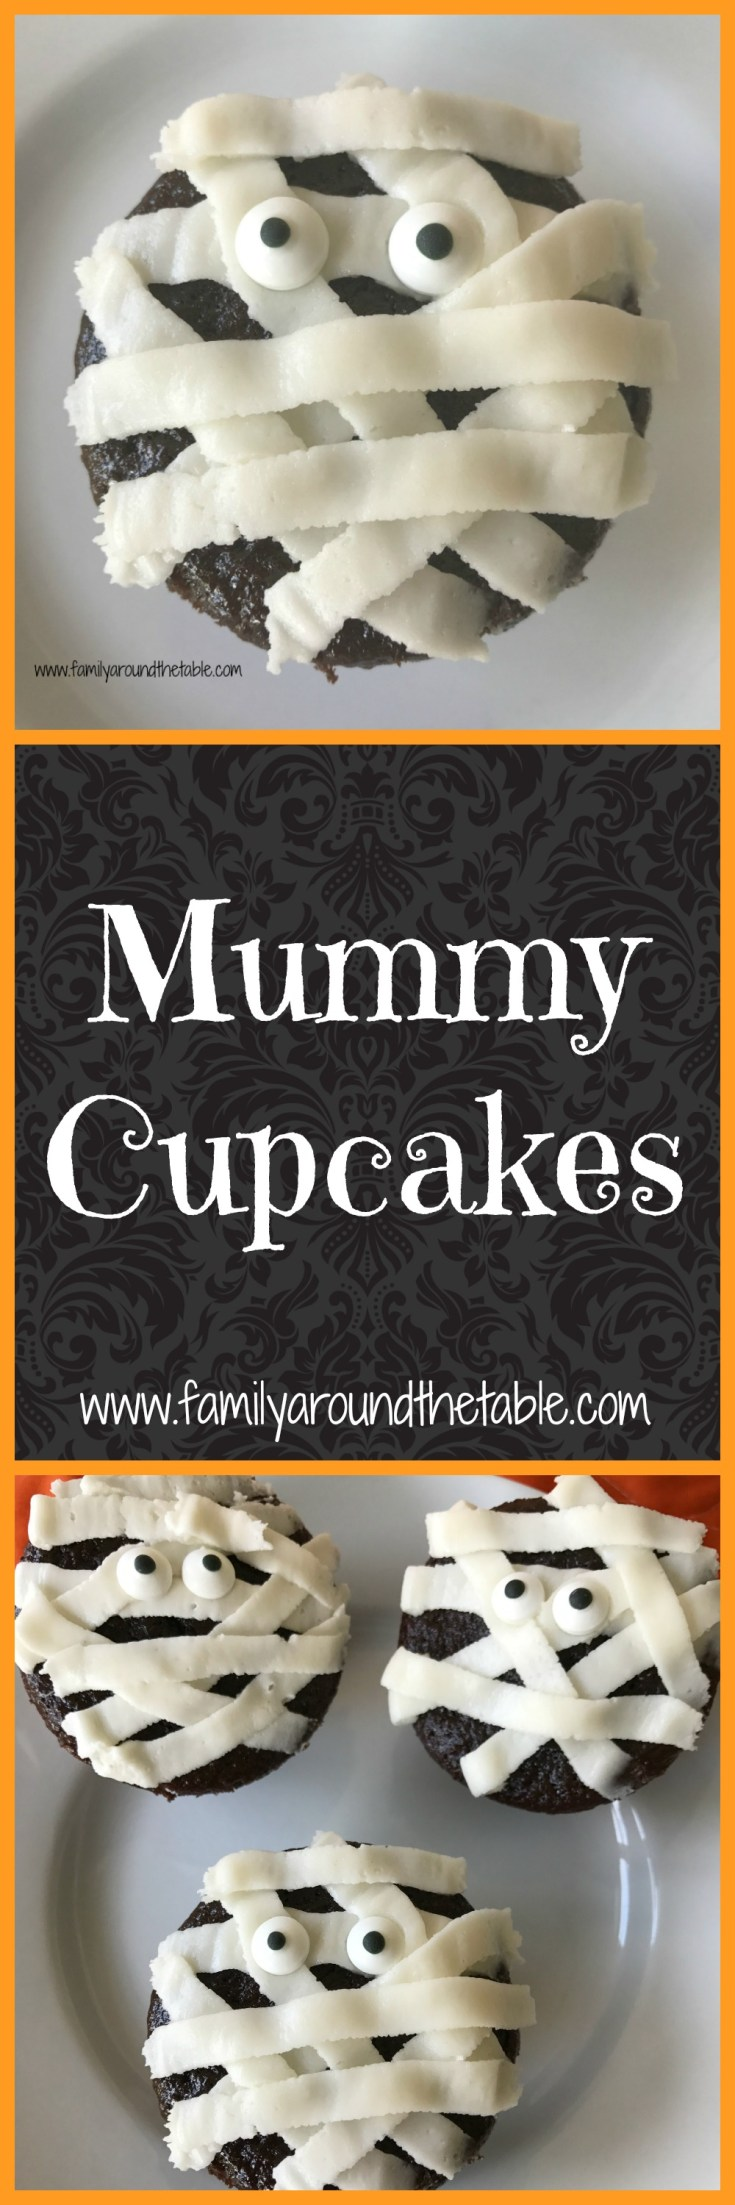 Mummy Cupcakes are a fun treat for Halloween.